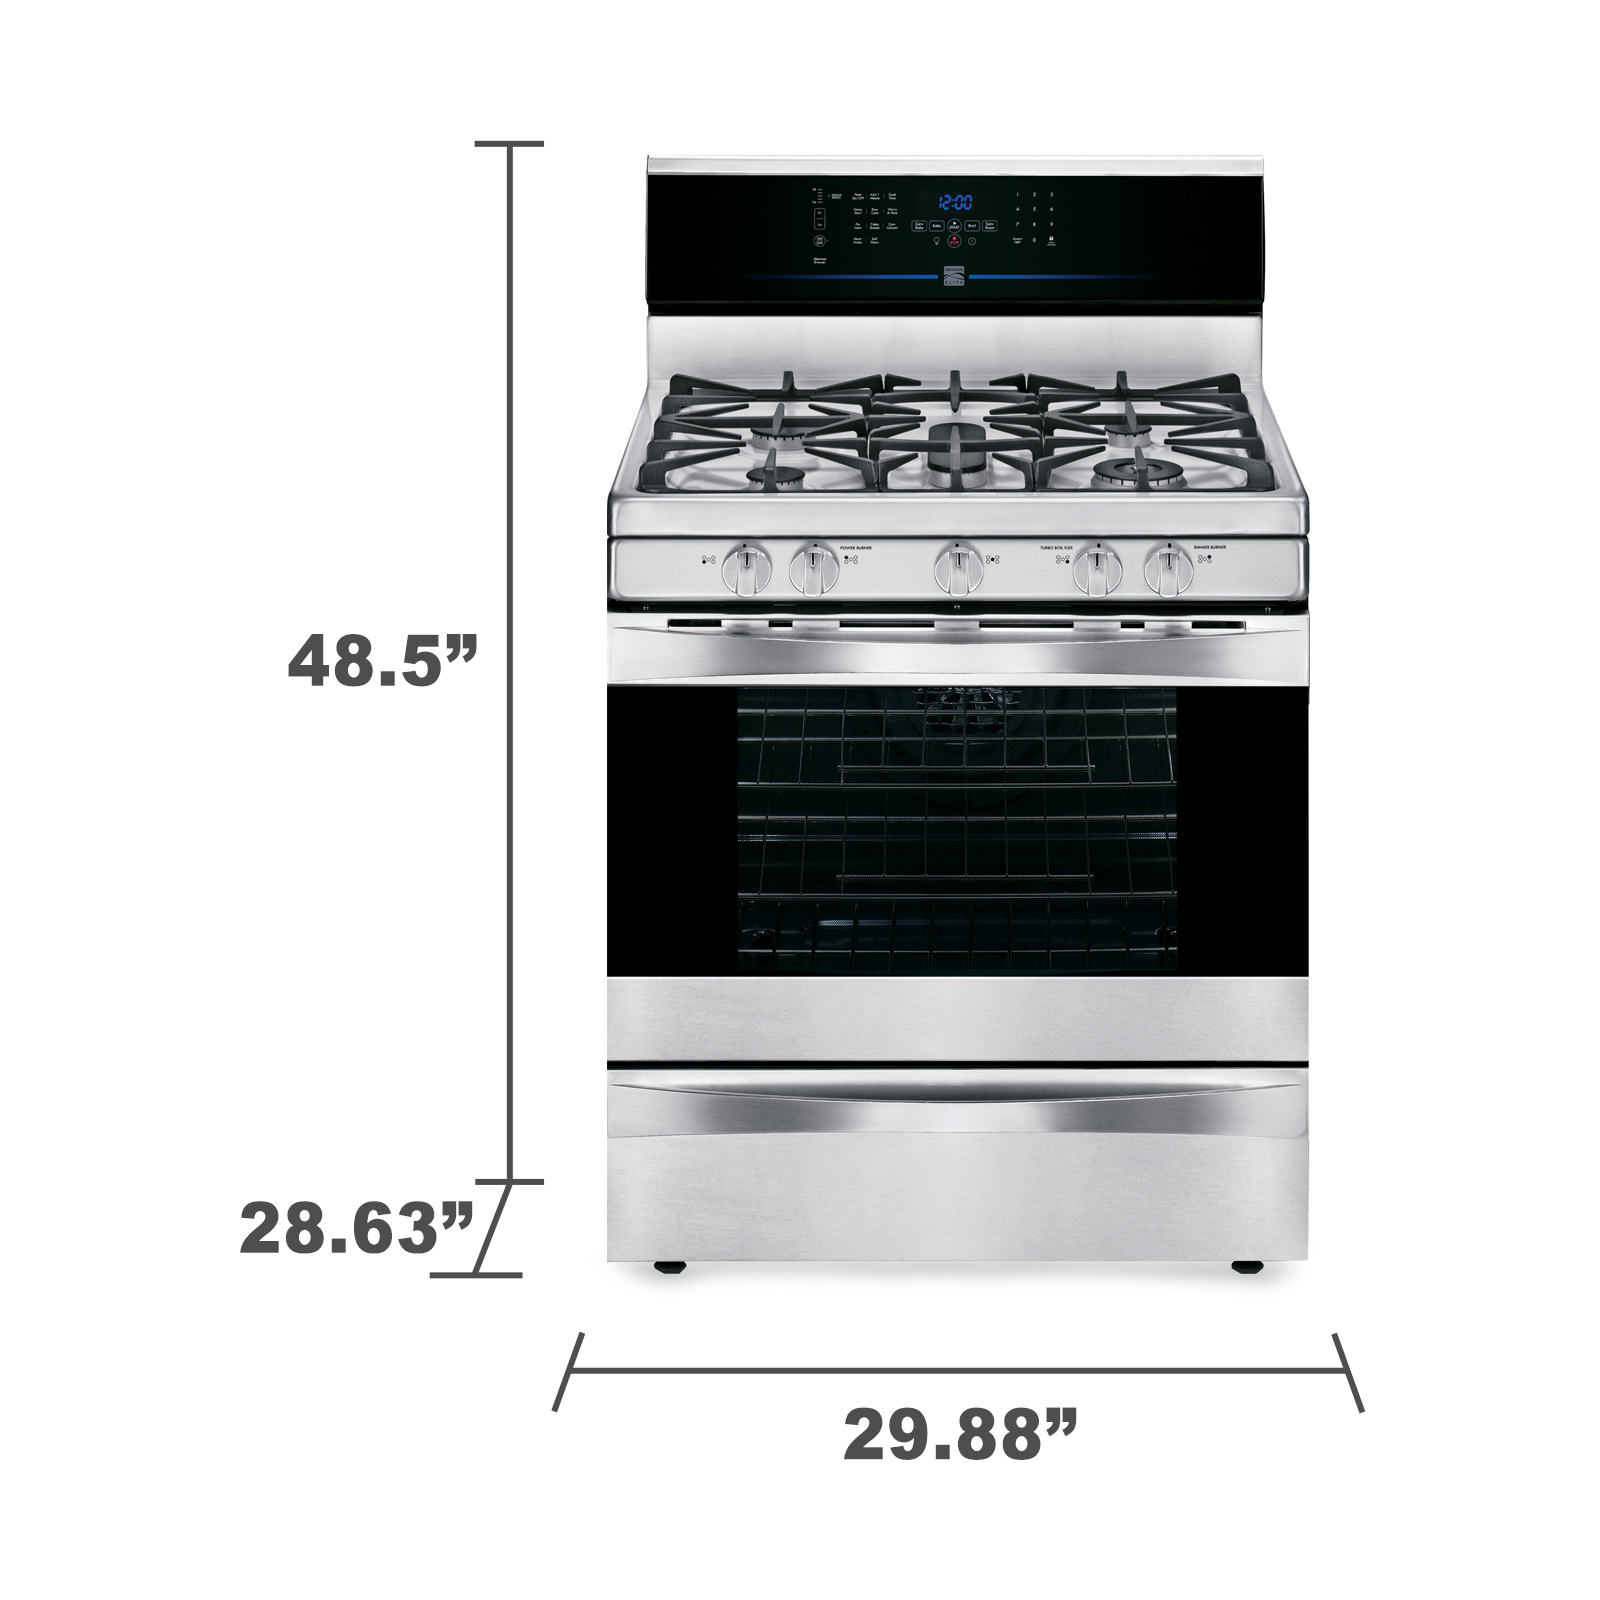 Kenmore Elite 75343 5.6 cu. ft. Gas Range w/ True Convection - Stainless Steel